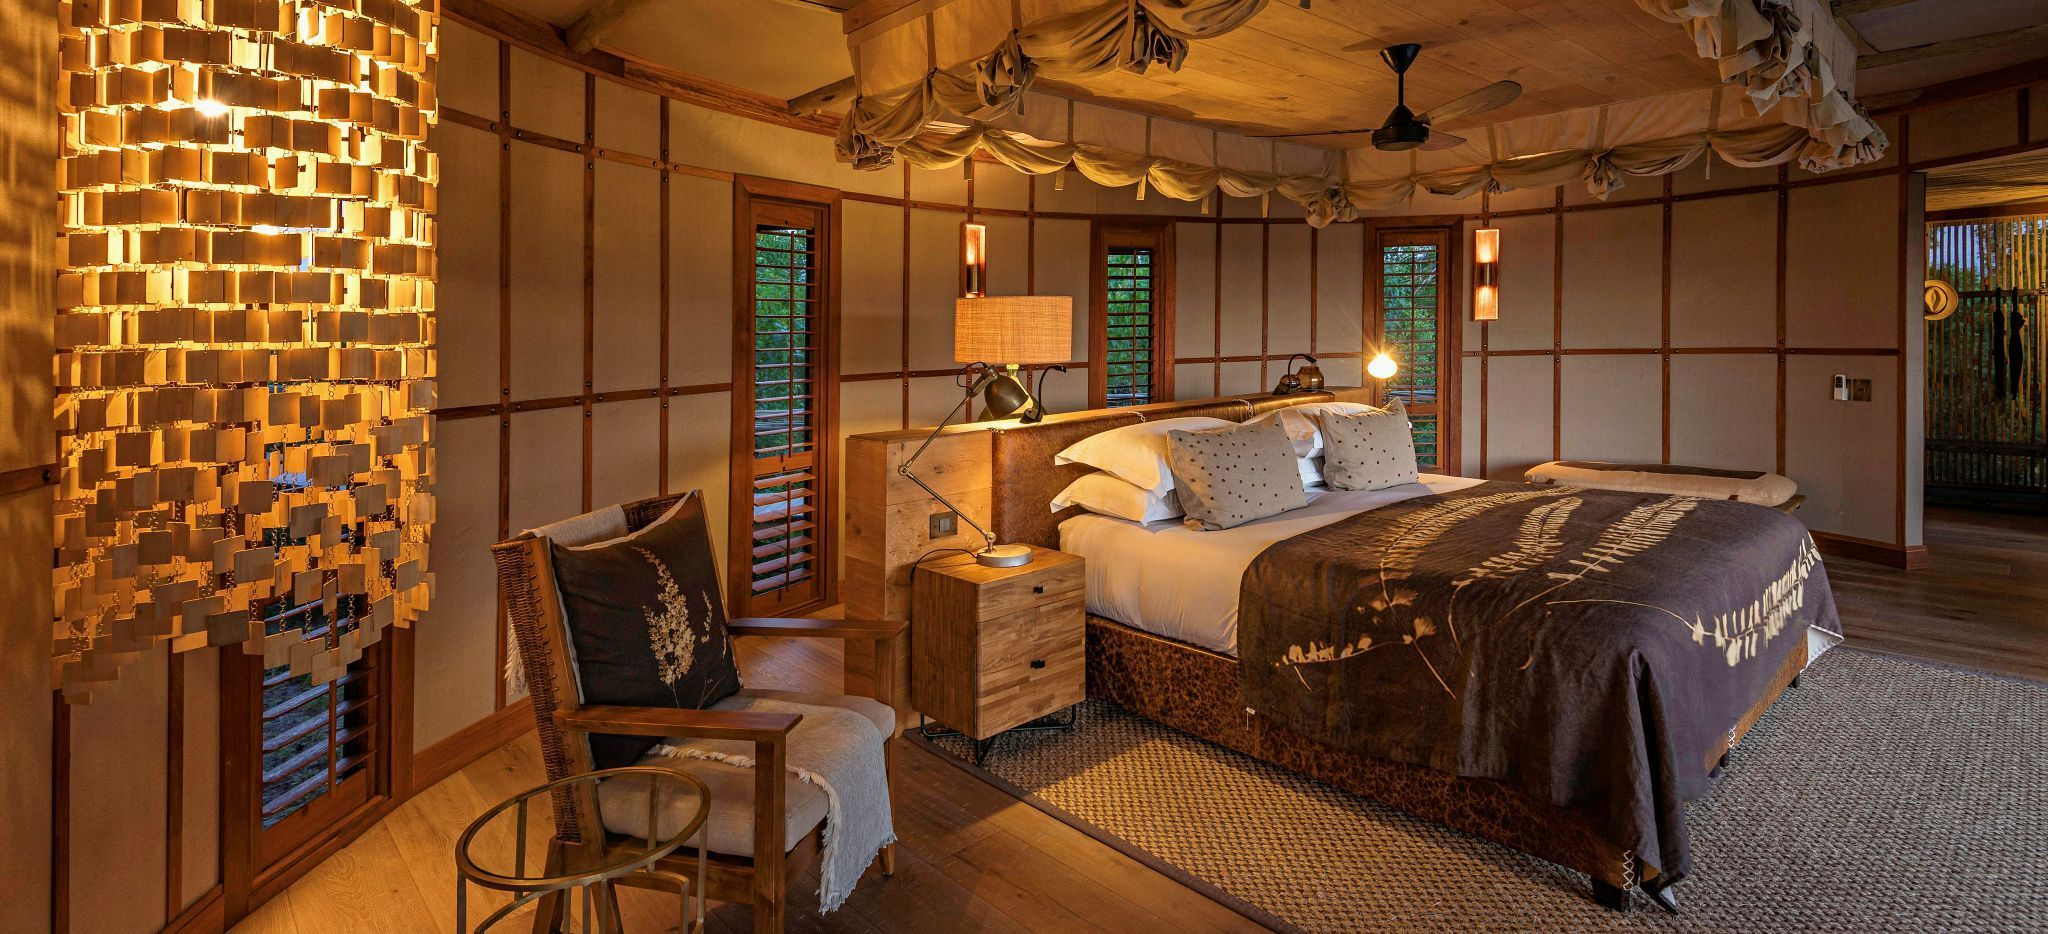 "Ein Schlafzimmer zur Abendstunde, in der Safari-Lodge ""Little Mombo"" in Botsuana"